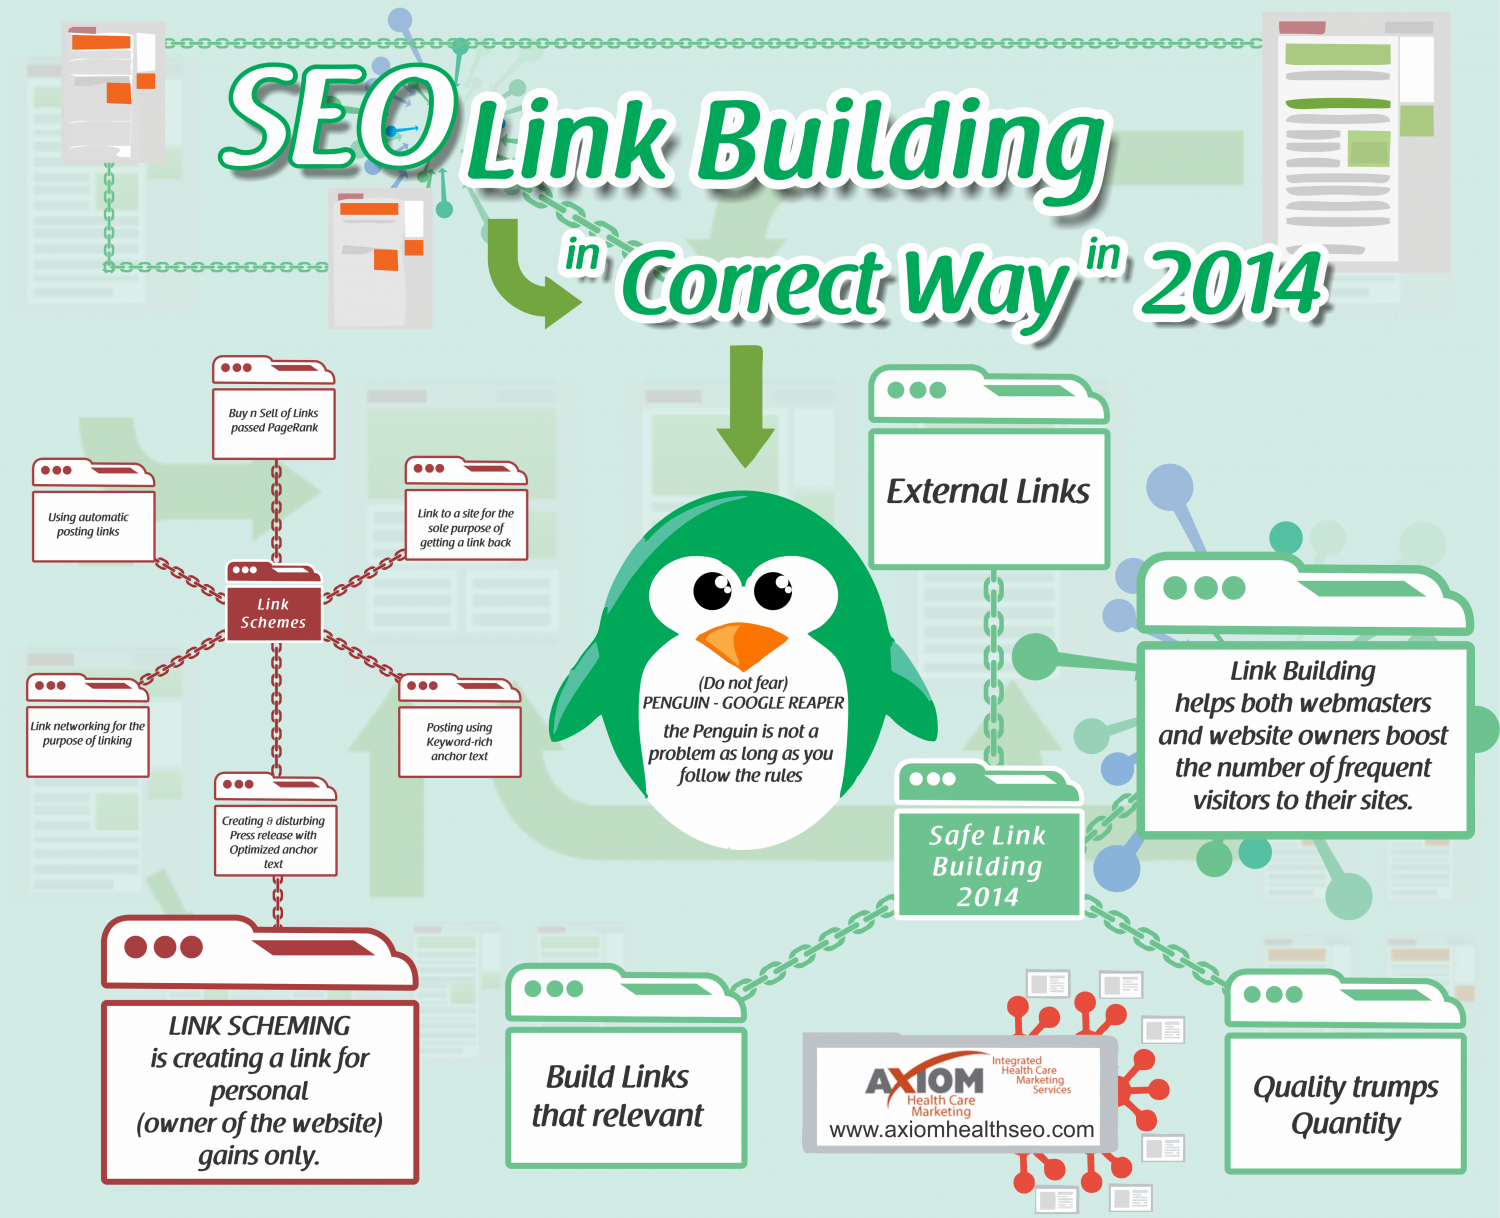 SEO: Link Building in Correct Way in 2014 Infographic